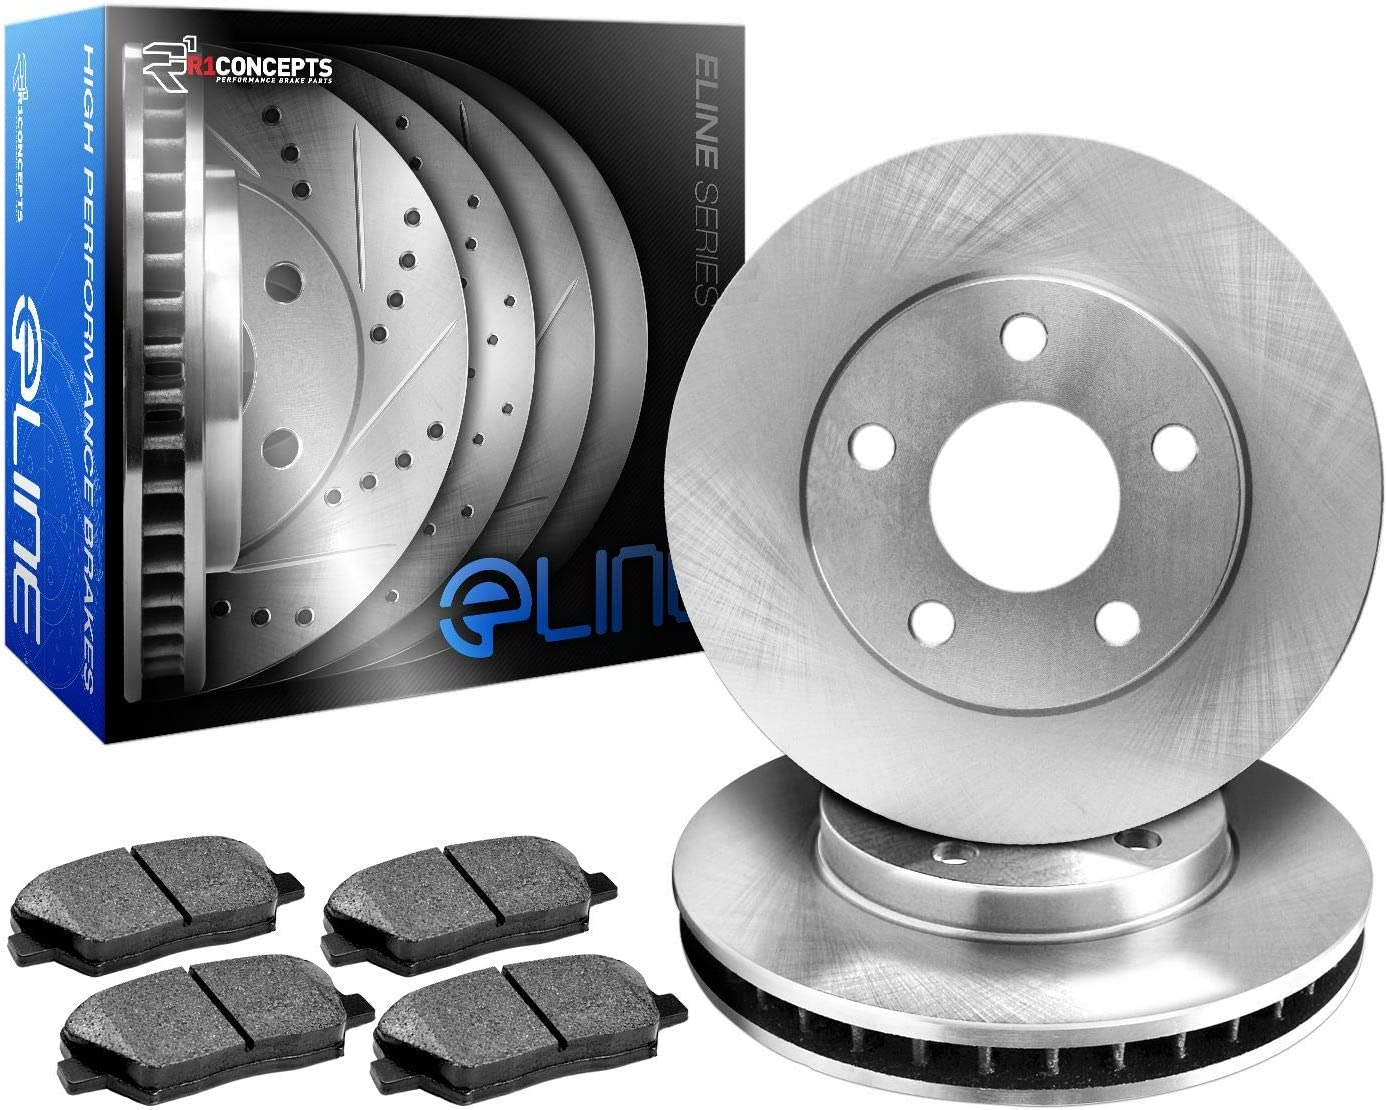 R1 Concepts KEOE11134 Fixed price for Elegant sale Eline Series Rotors Cerami Replacement And